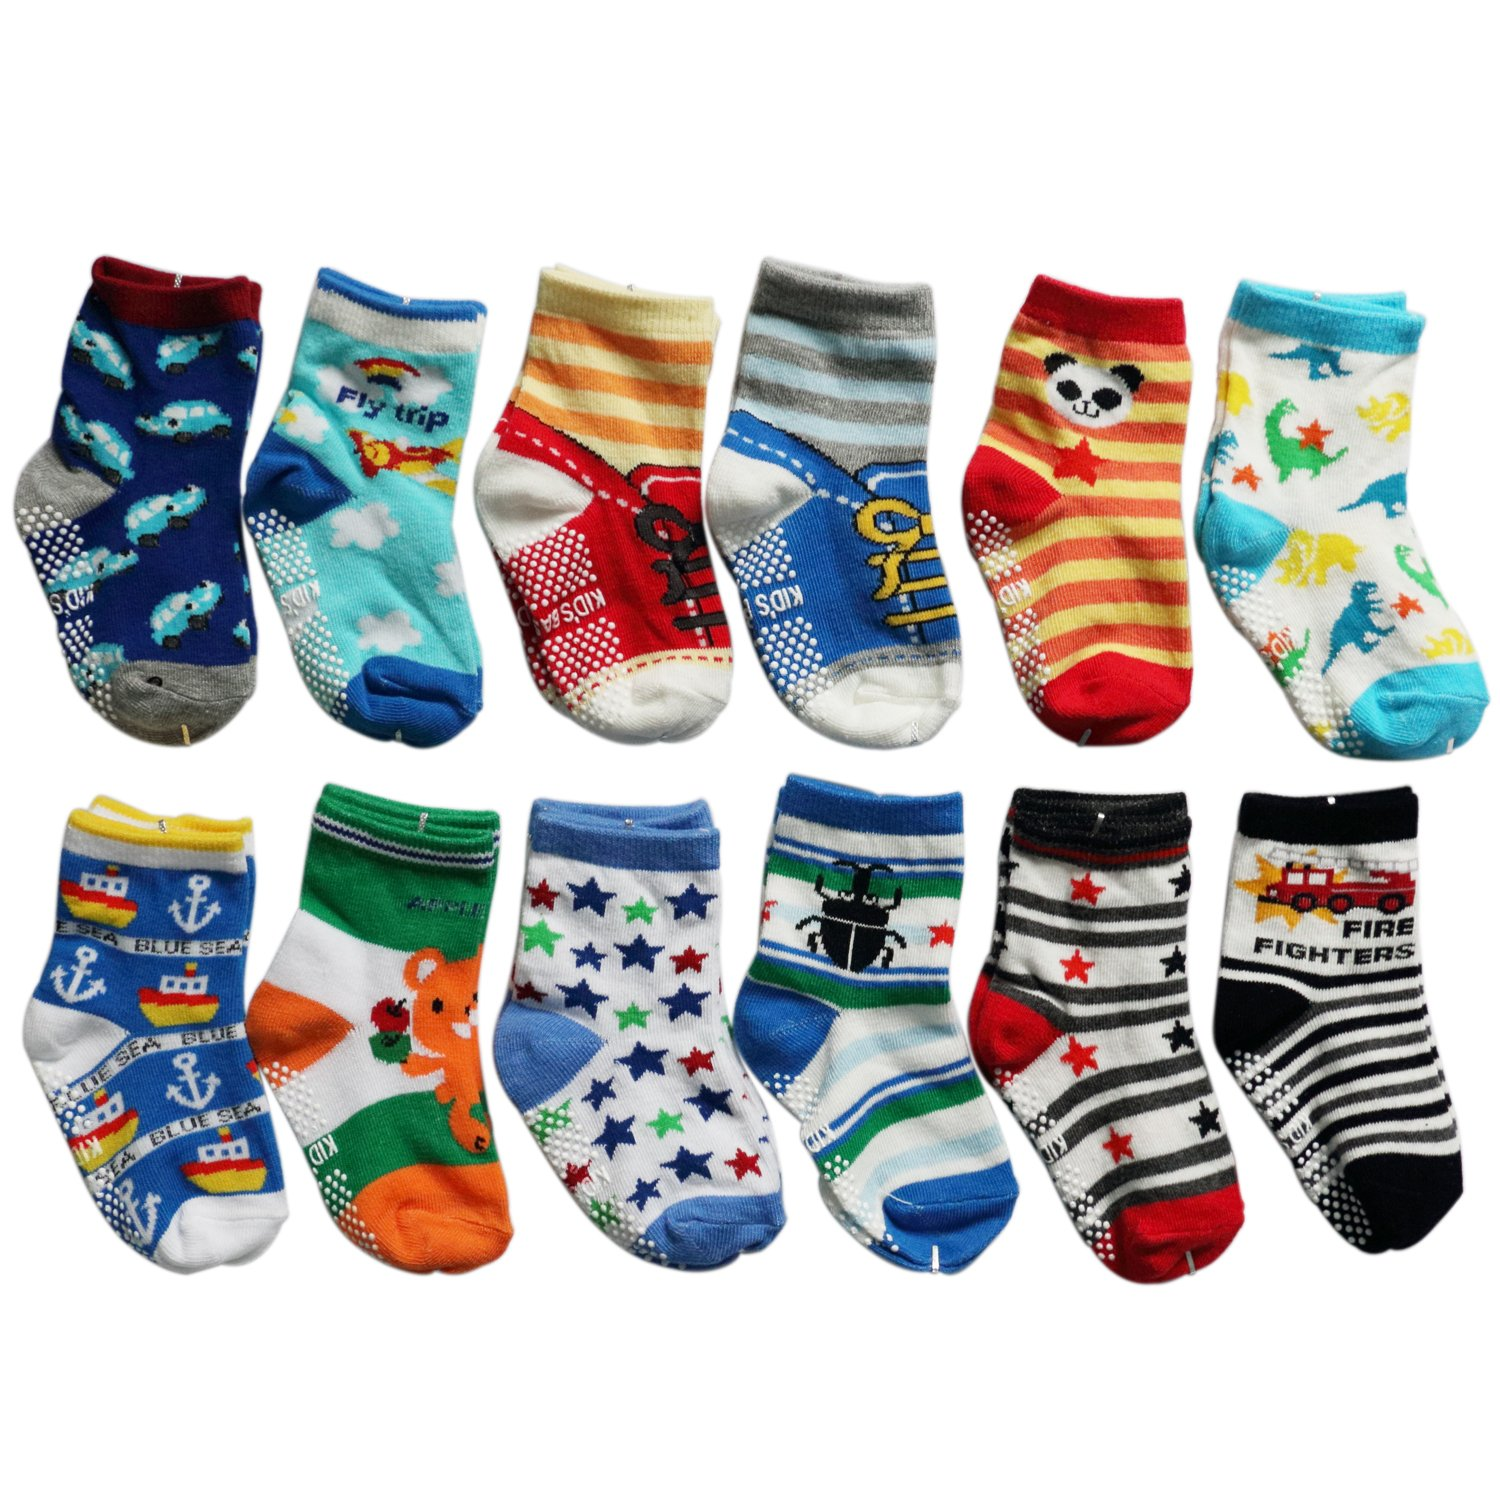 OKPOW 12 Pairs Baby Infants Toddler Socks Bright Random Colored Socks Anti-skid Cotton Socks Gift S-54